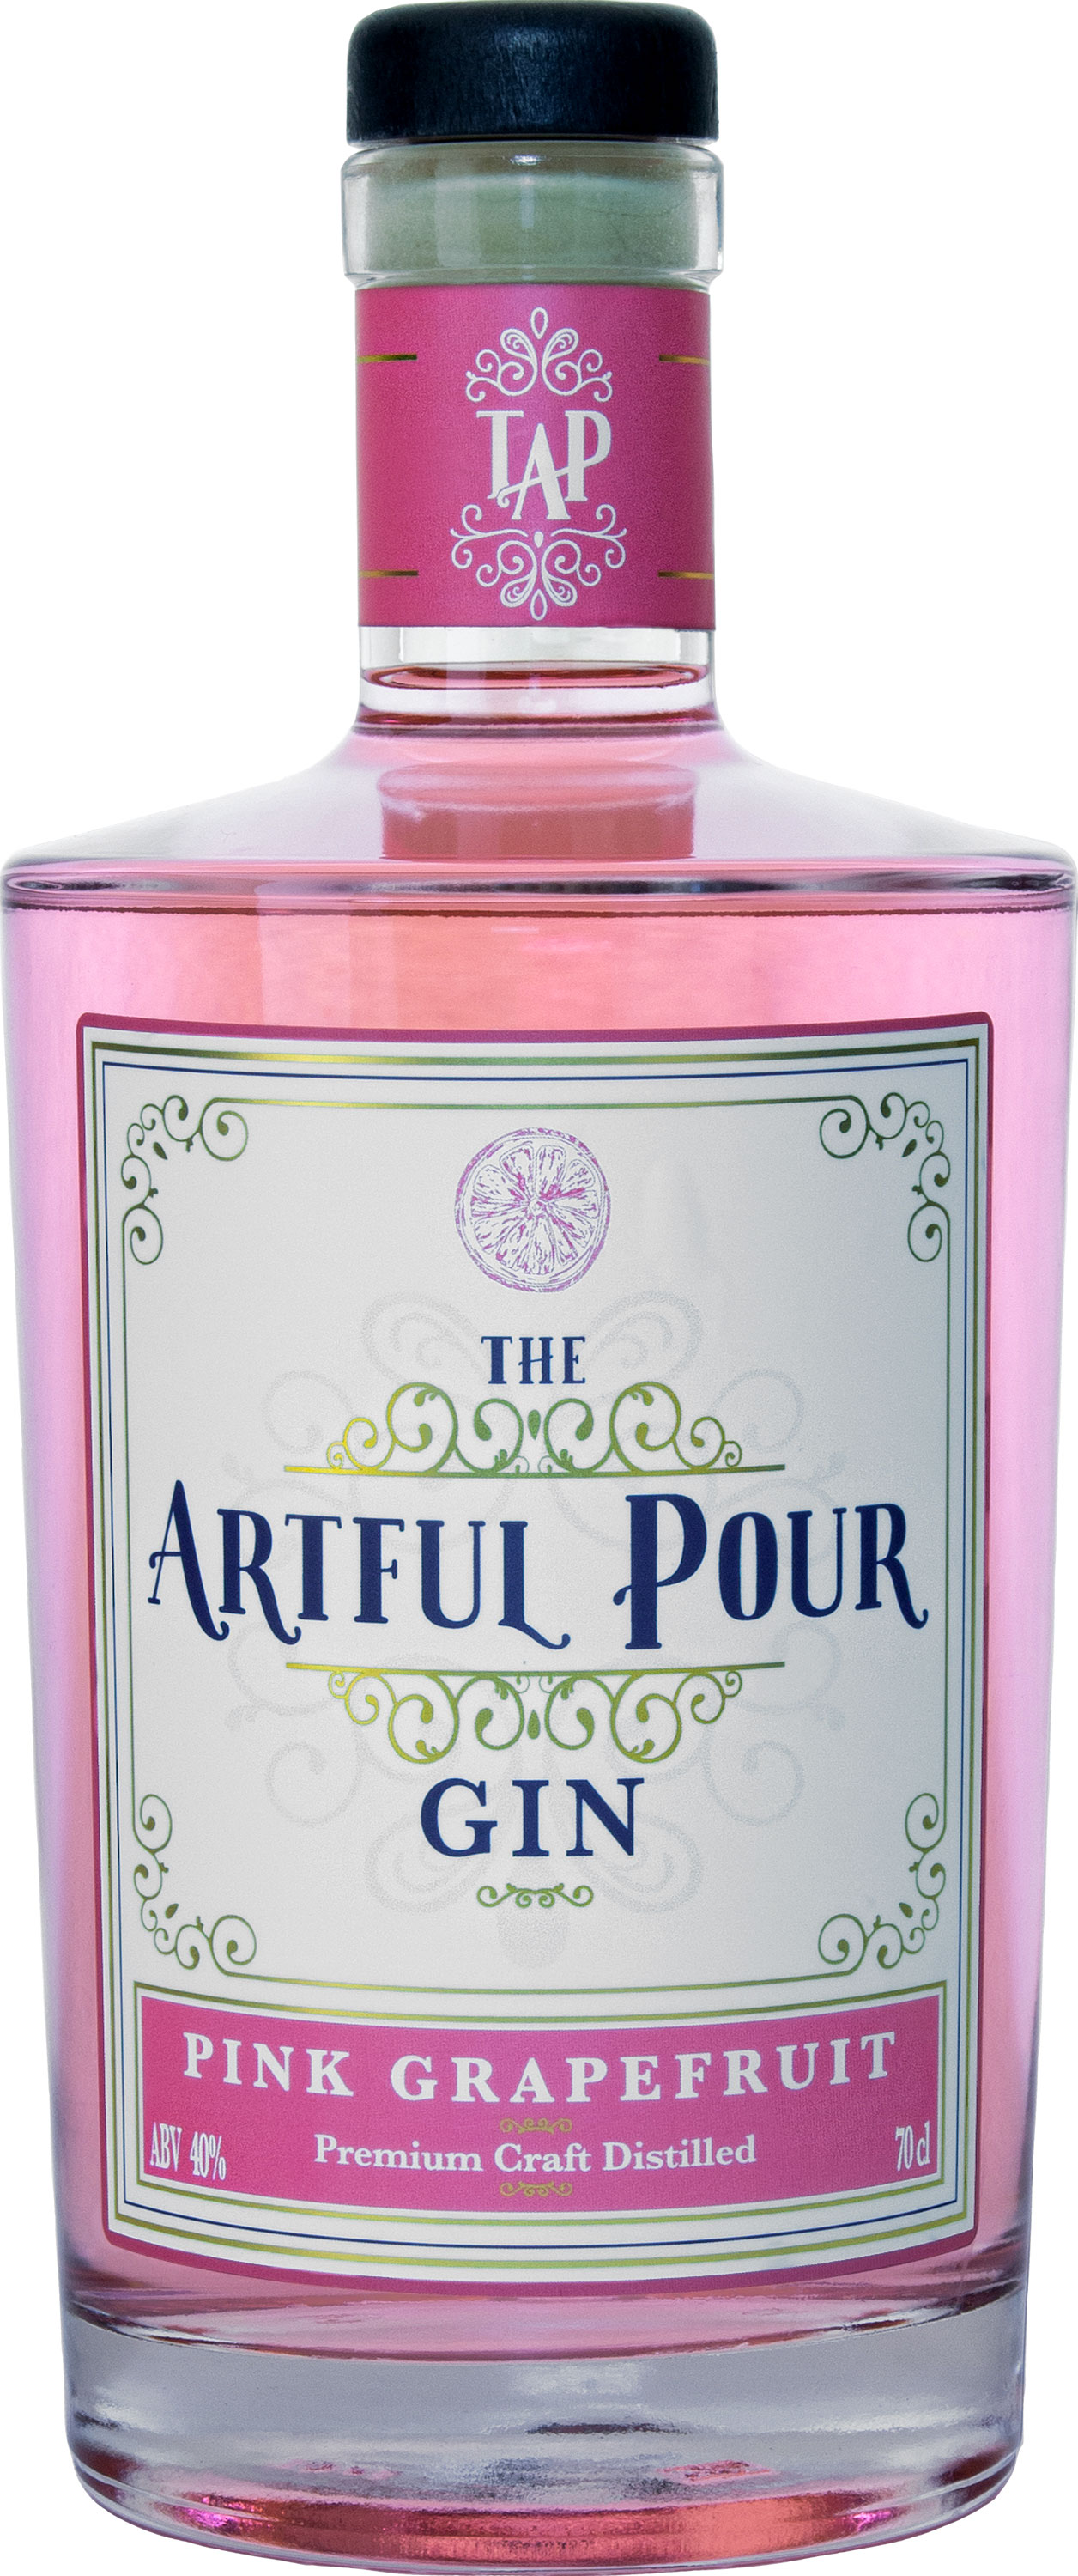 The Artful Pour - Pink Grapefruit Gin 70cl Bottle